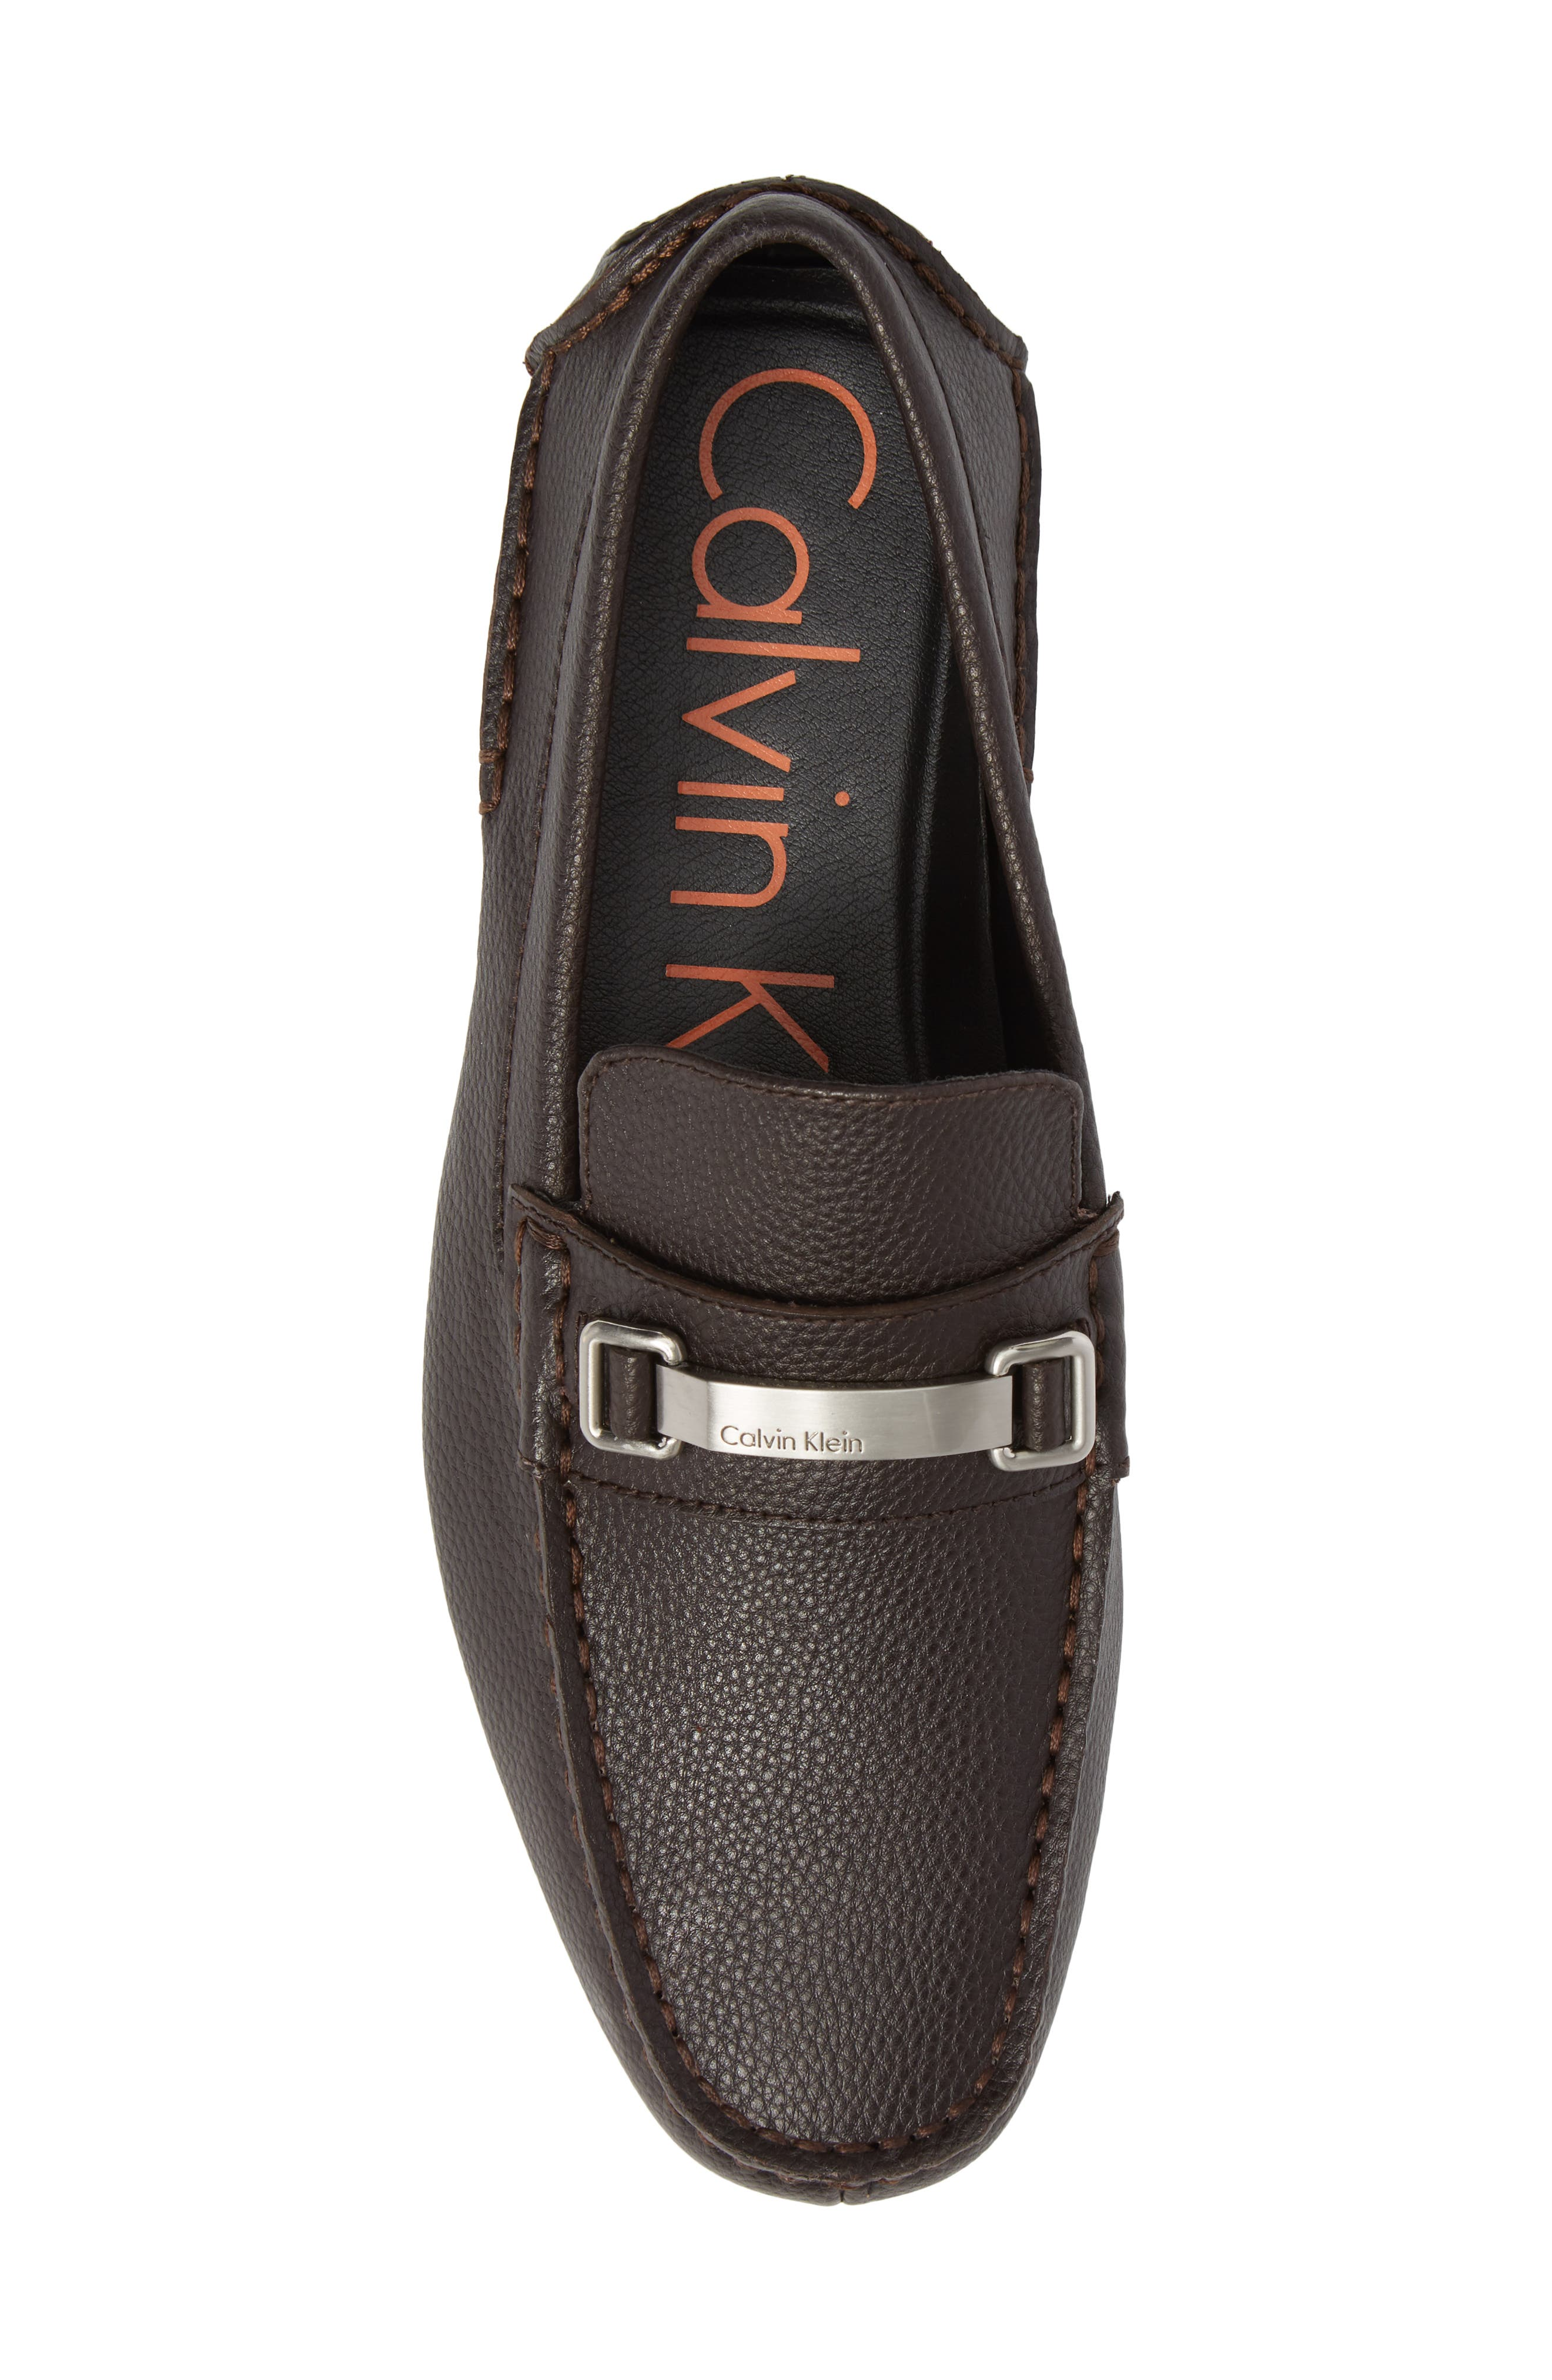 Mikos Driving Shoe,                             Alternate thumbnail 5, color,                             Dark Brown Leather